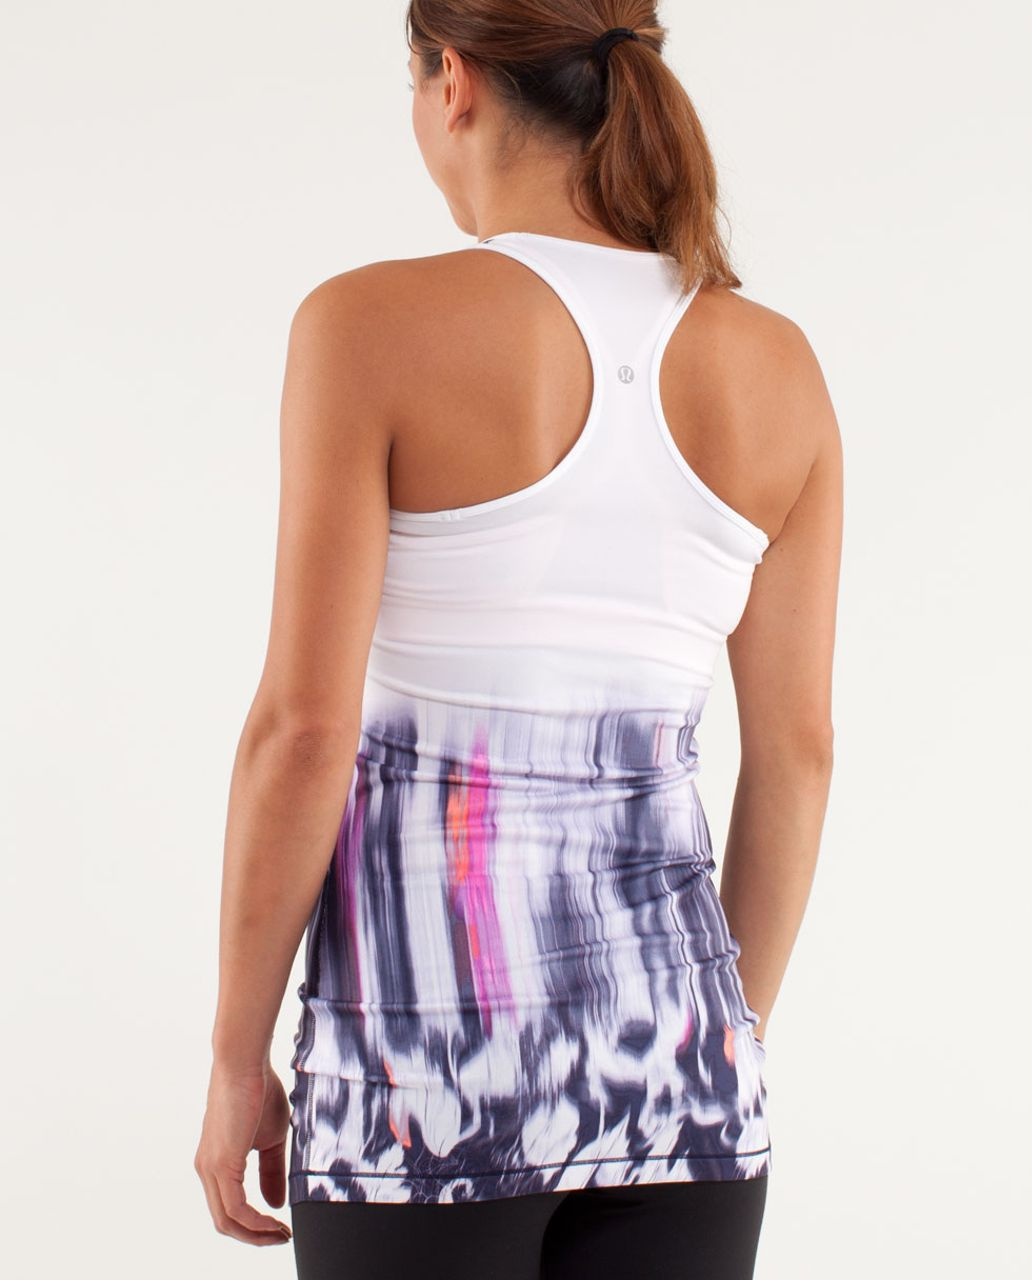 Lululemon Cool Racerback *Extra Long - Engineered Mirage Deep Indigo / White